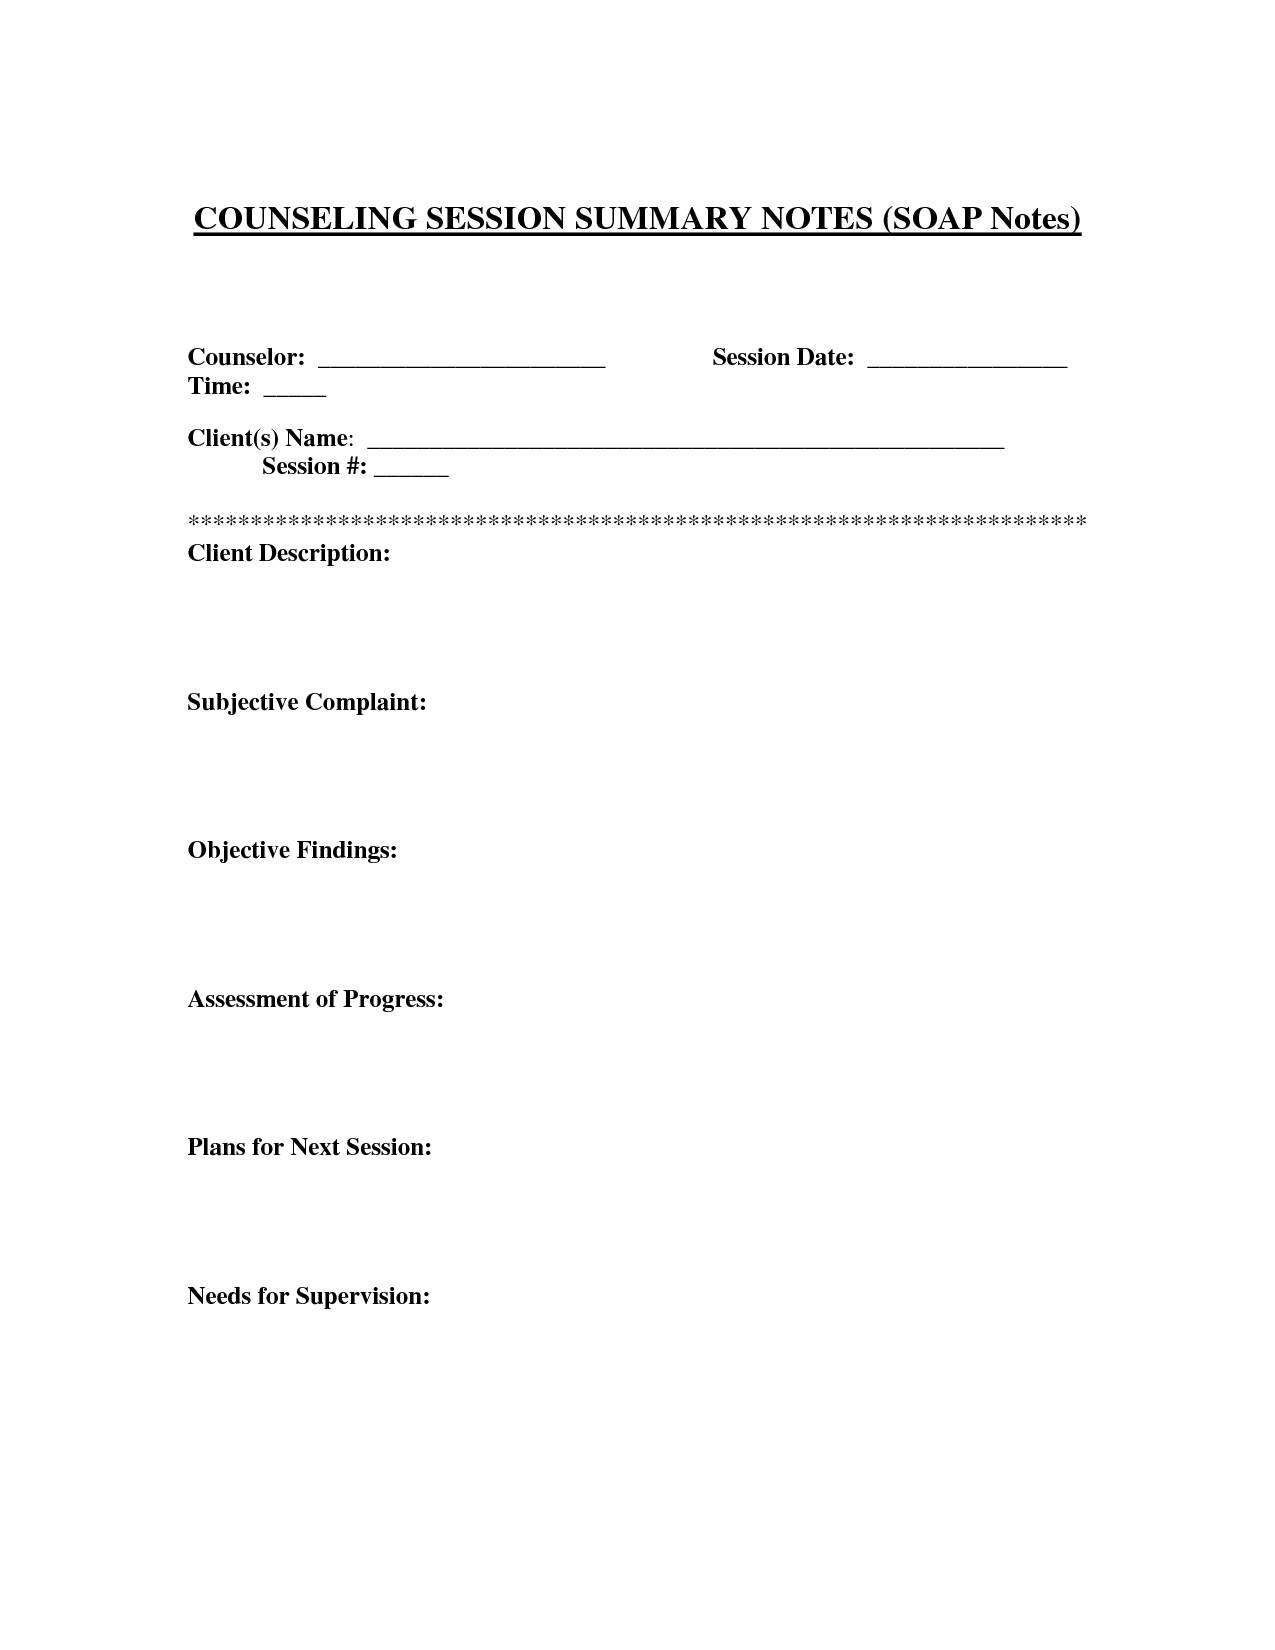 Soap Notes Template For Counseling